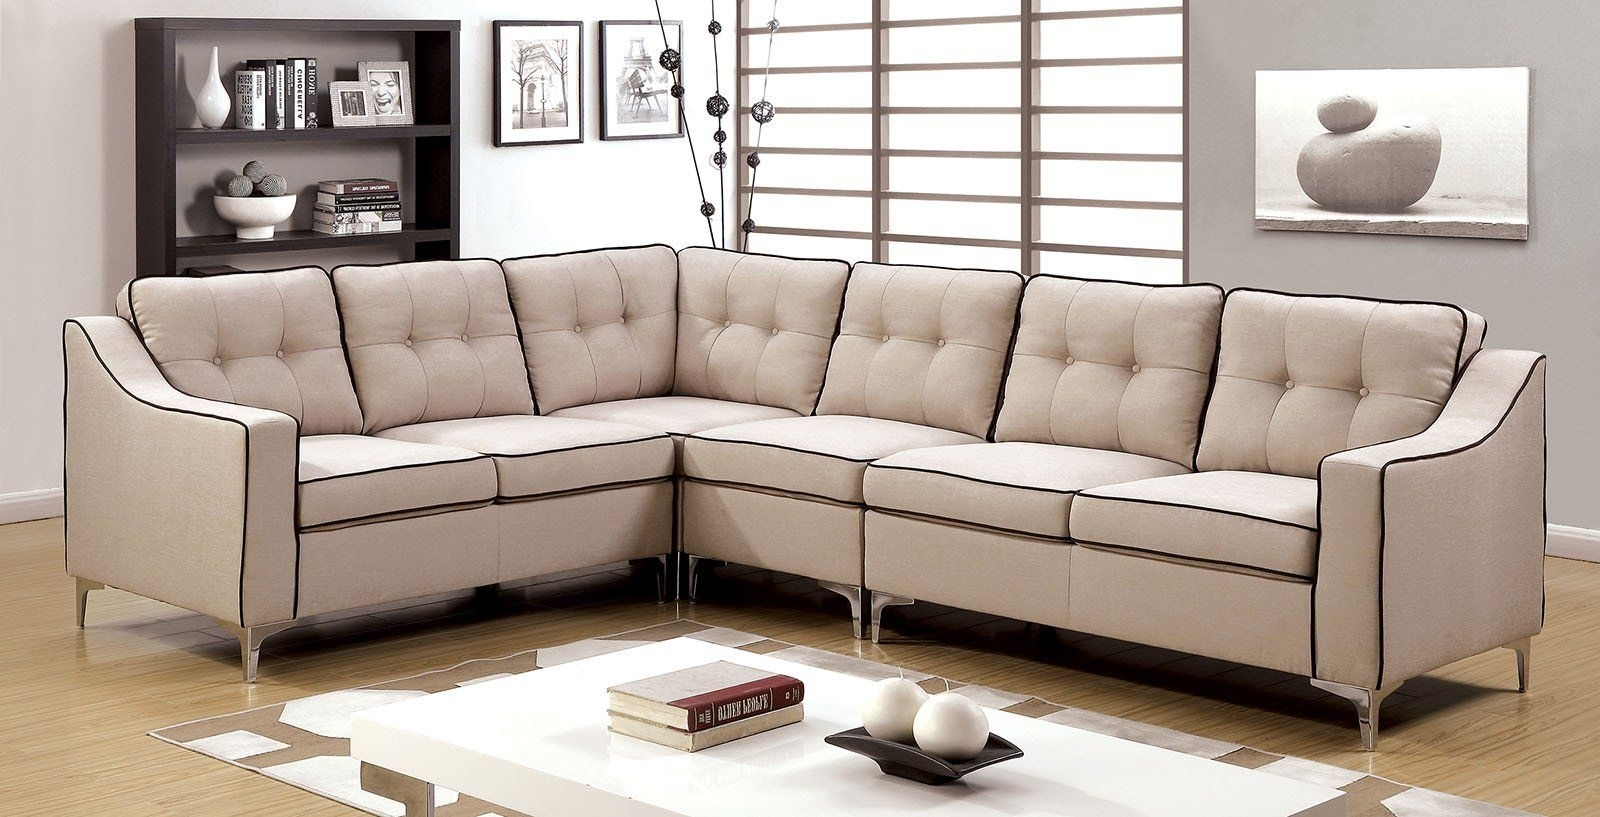 Glenda Ii Contemporary Sectional | Products Intended For Aidan 4 Piece Sectionals (Image 15 of 25)